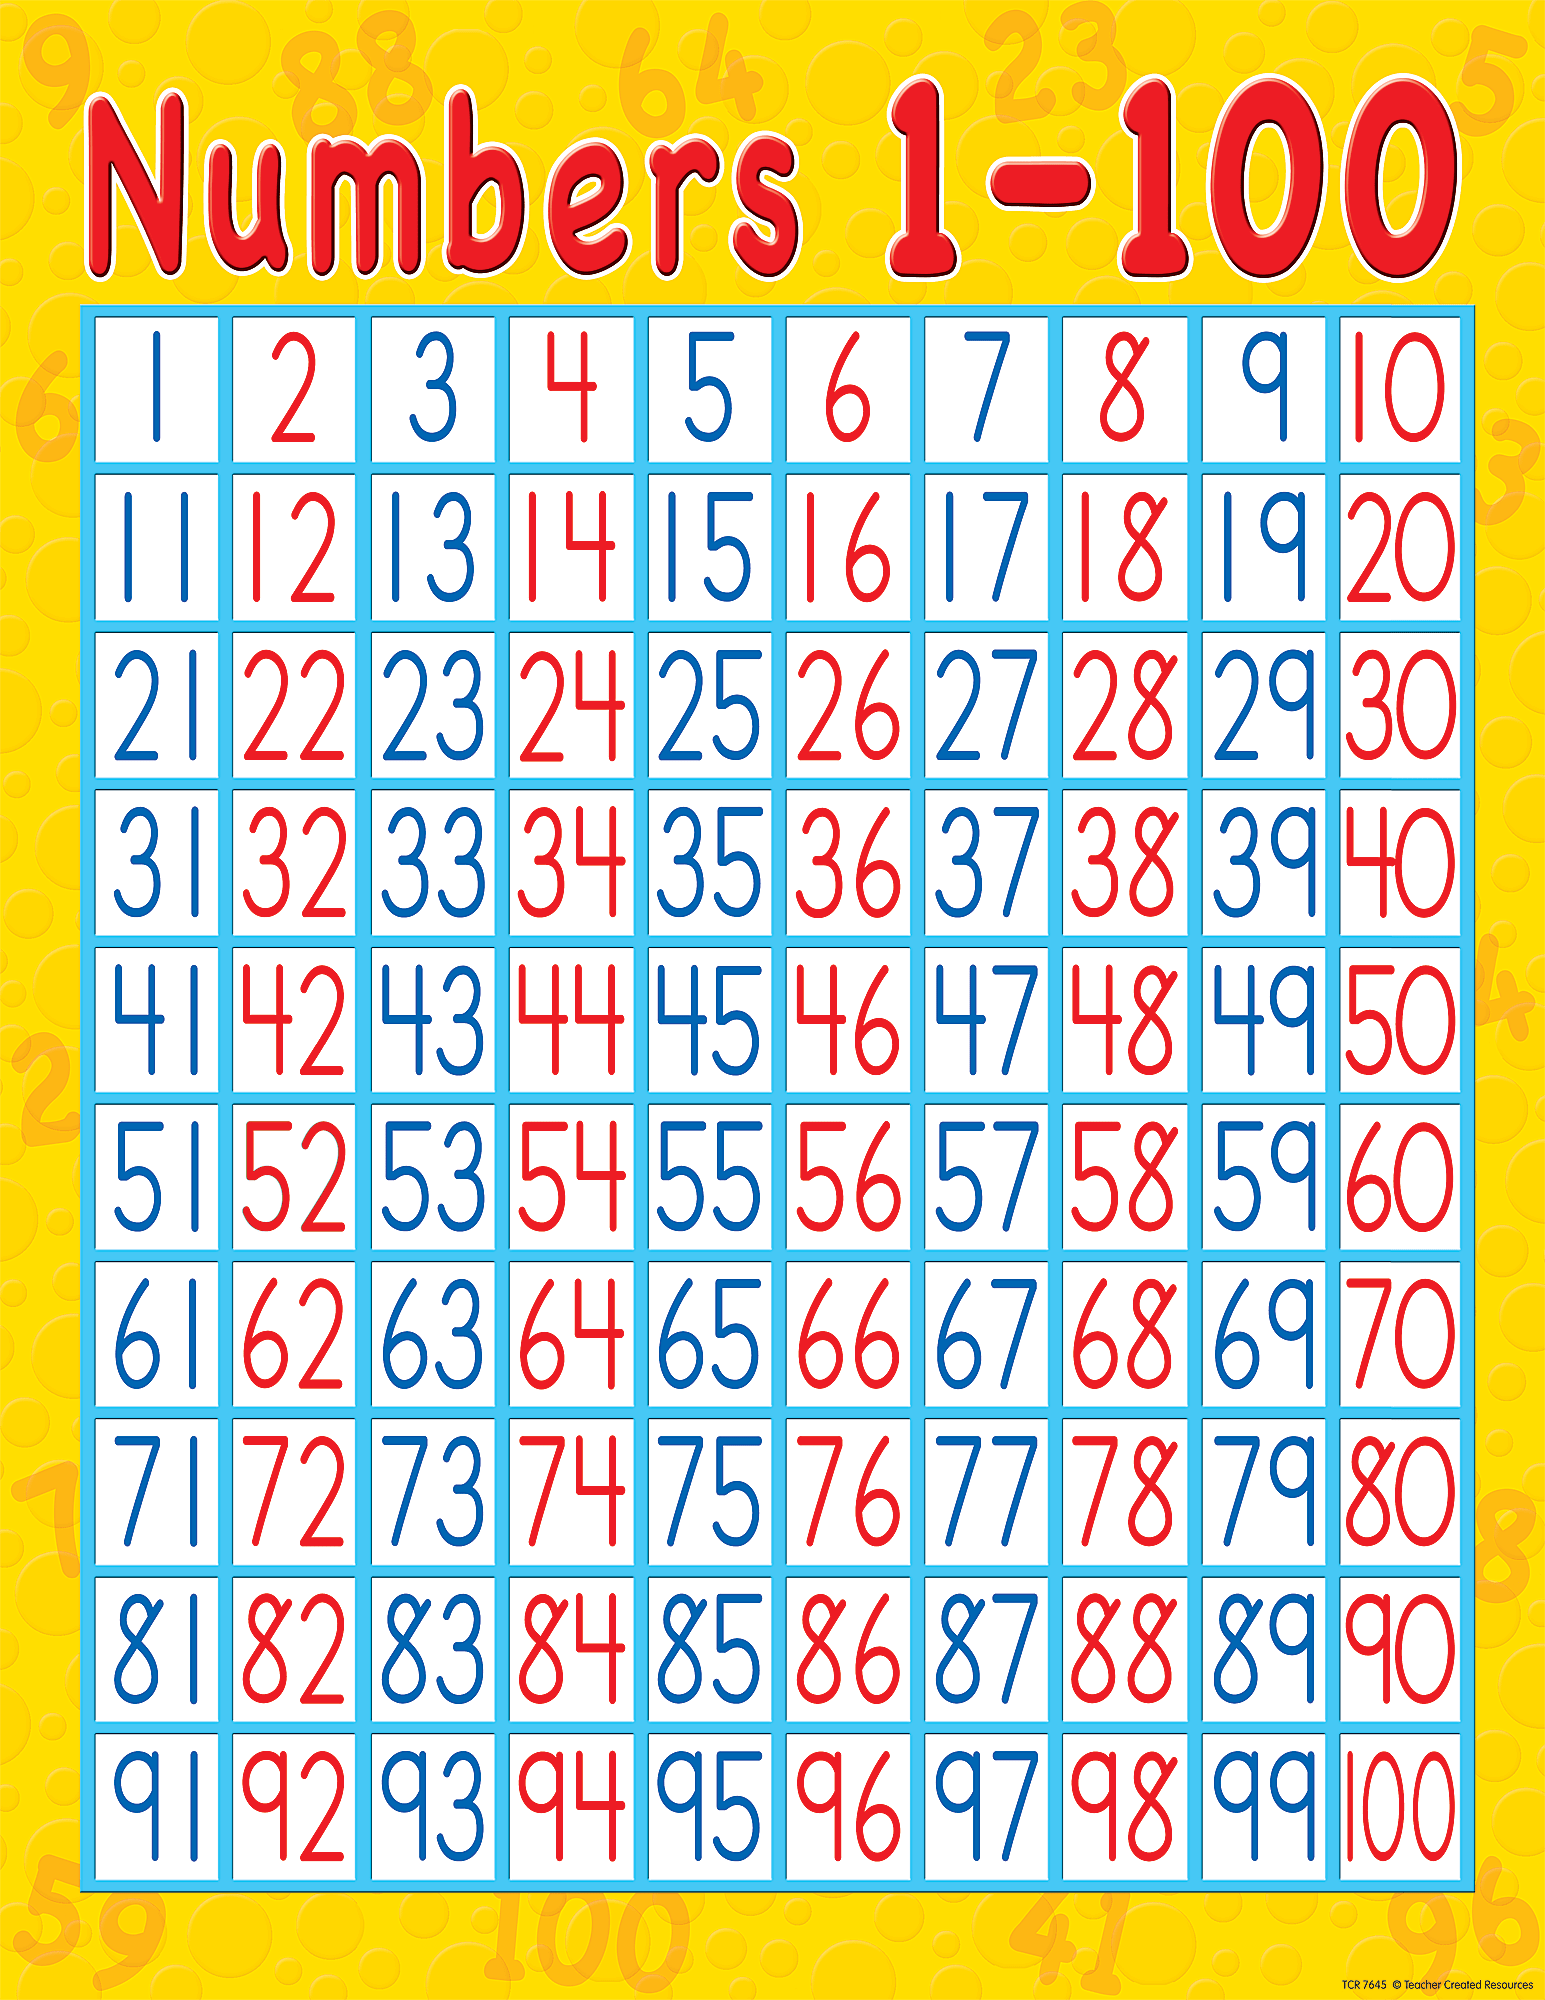 Numbers 1 100 Chart